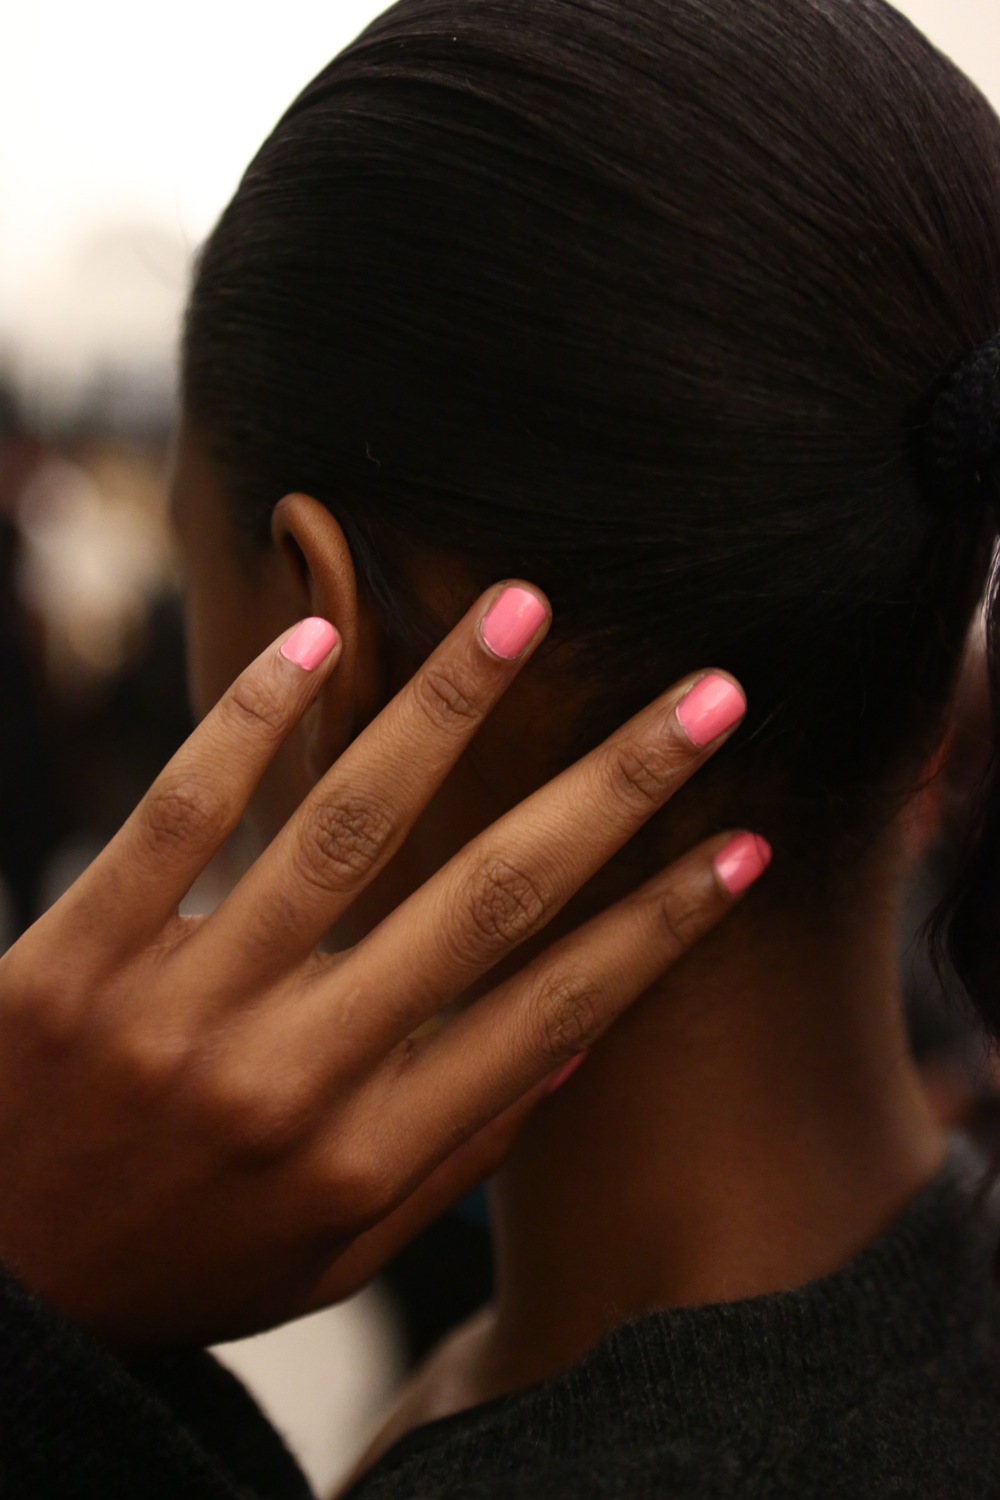 <p>Pretty pink nails ruled at Douglas Hannant. <strong>Essie</strong>&rsquo;s First Base Coat, Knockout Pout, and Good to Go looked lovely alongside all the fun and floral designs at this show. &nbsp;</p>